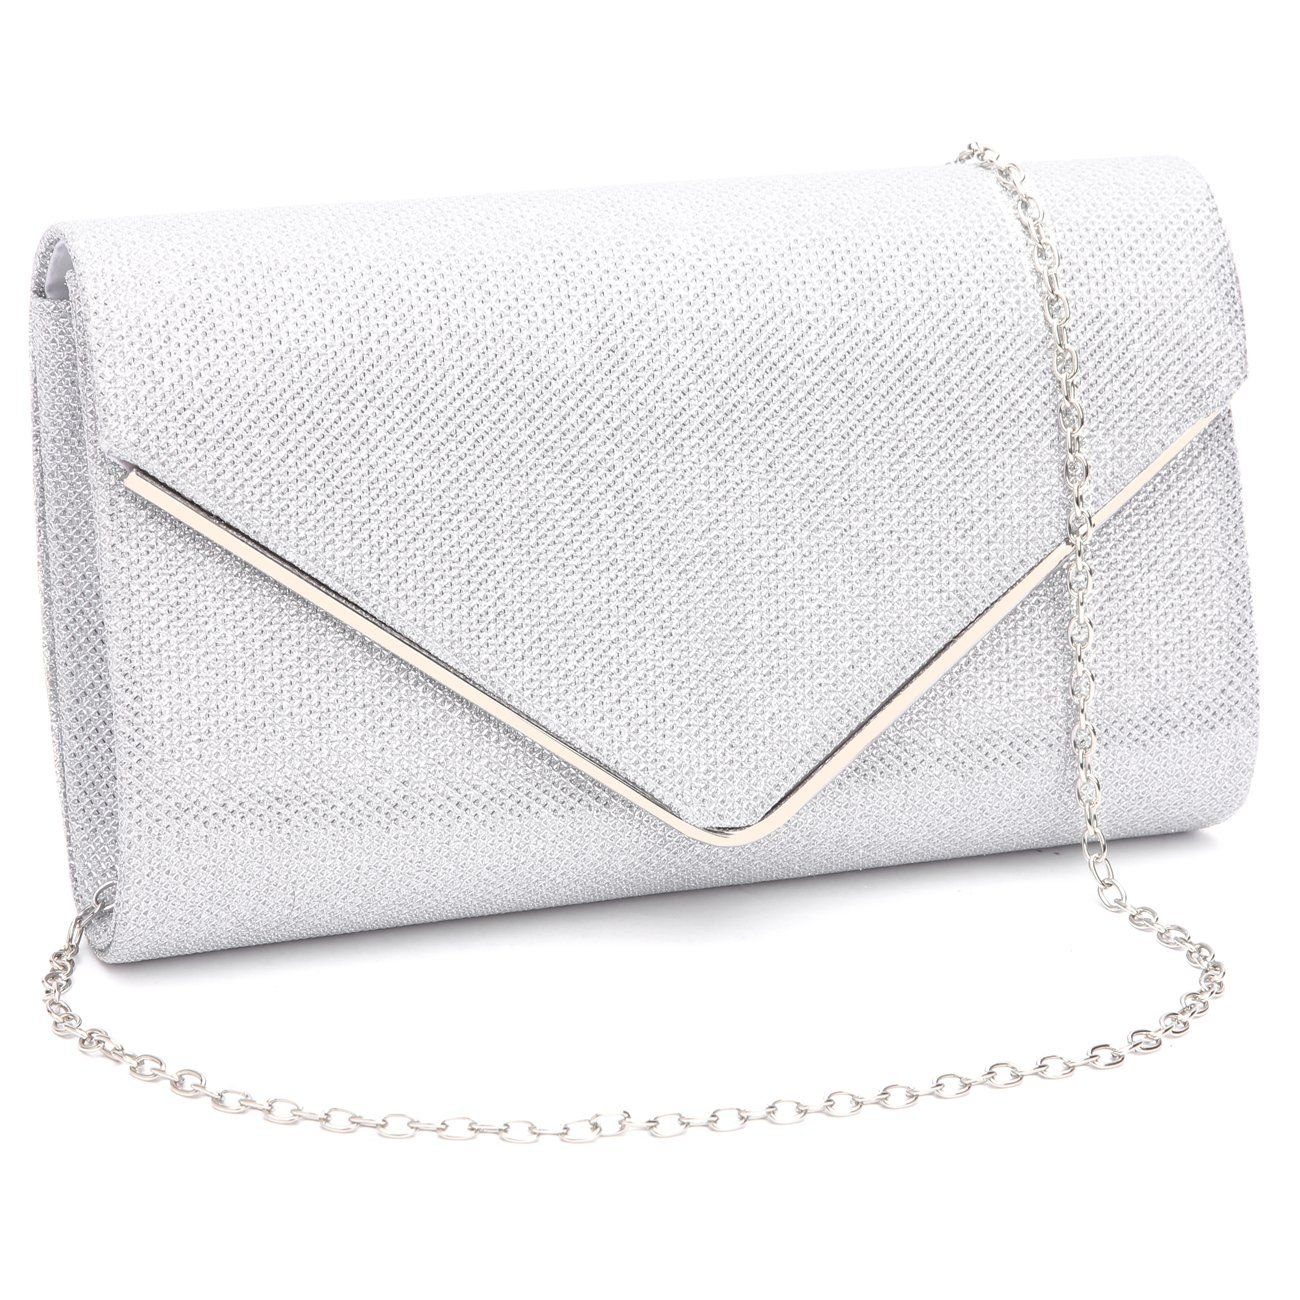 Luxury Women Glitter Clutch Handbag Bag Evening Bridal Wedding Pouch Prom Bag